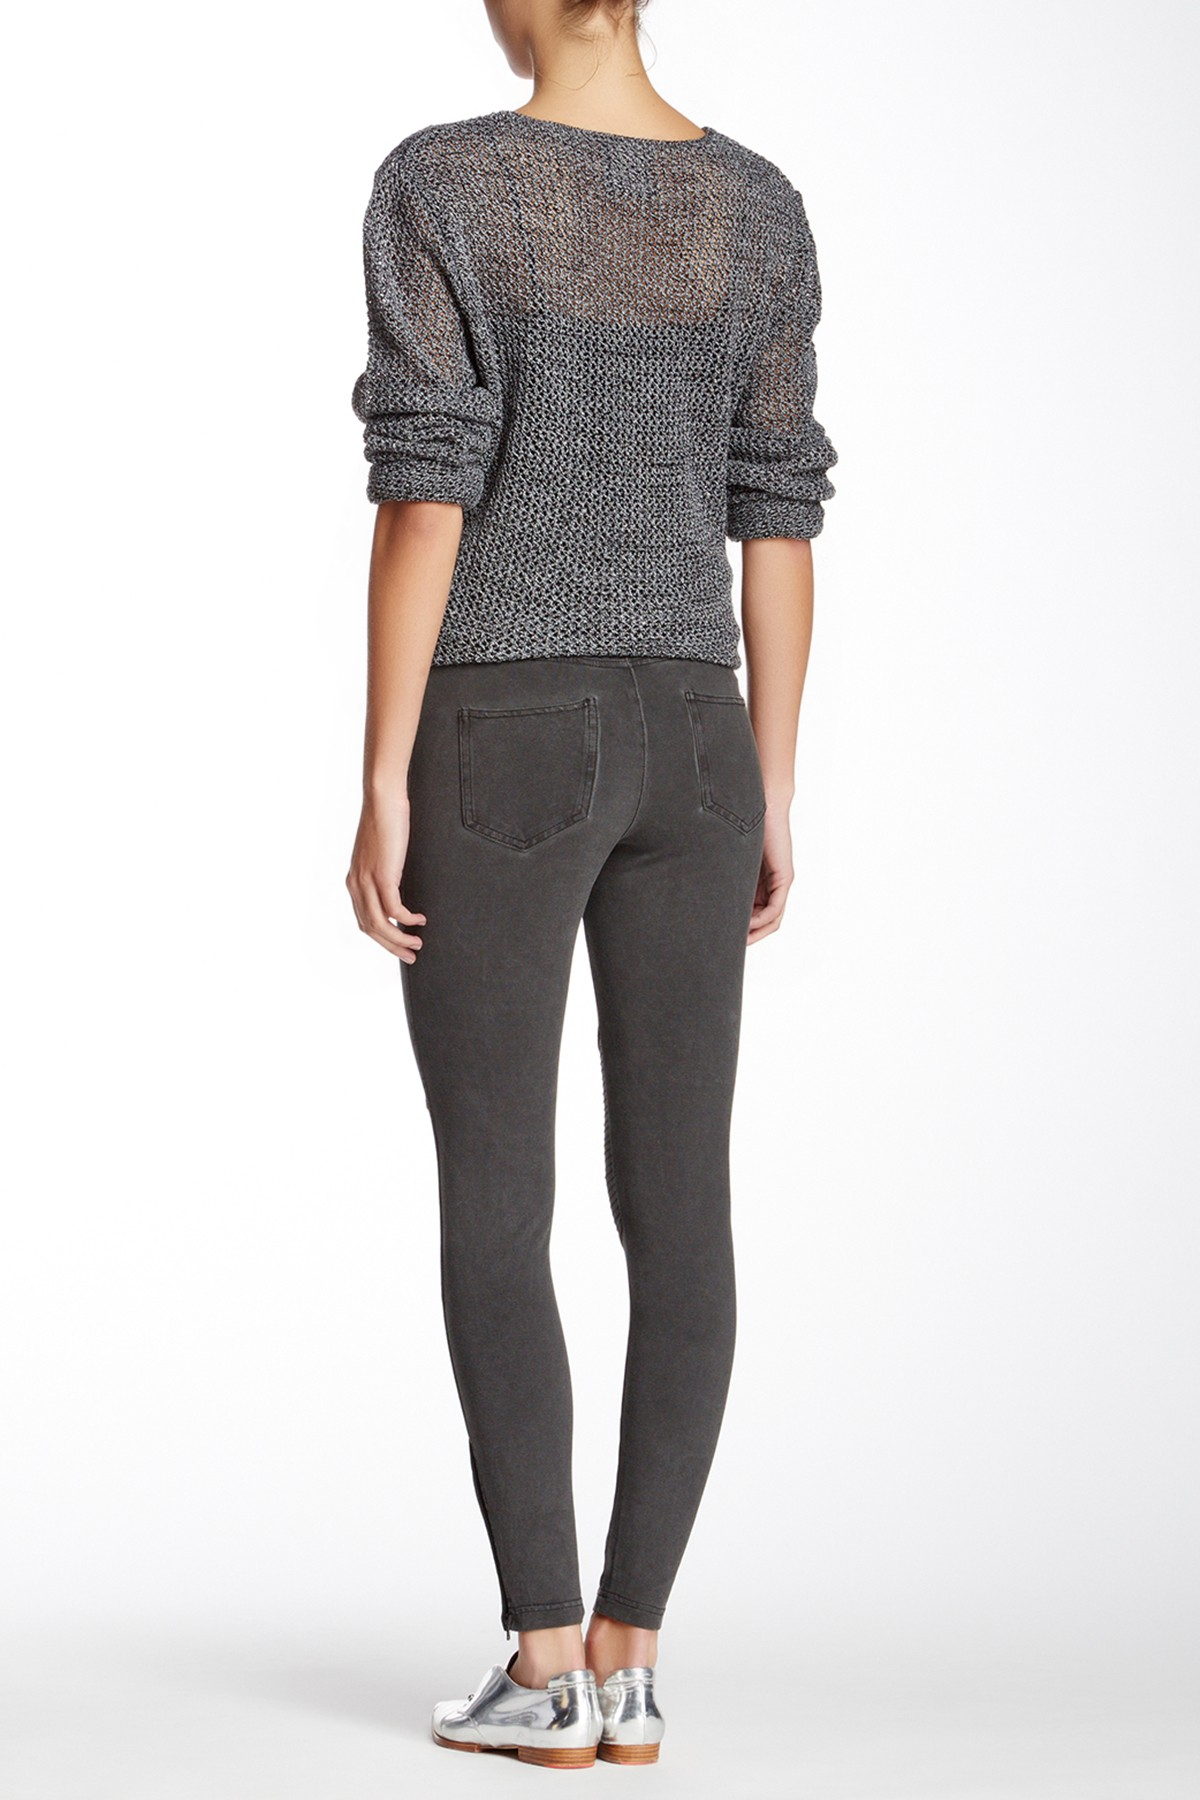 Excellent REISS Jeans Jagger Skinny In Jacquard For Women